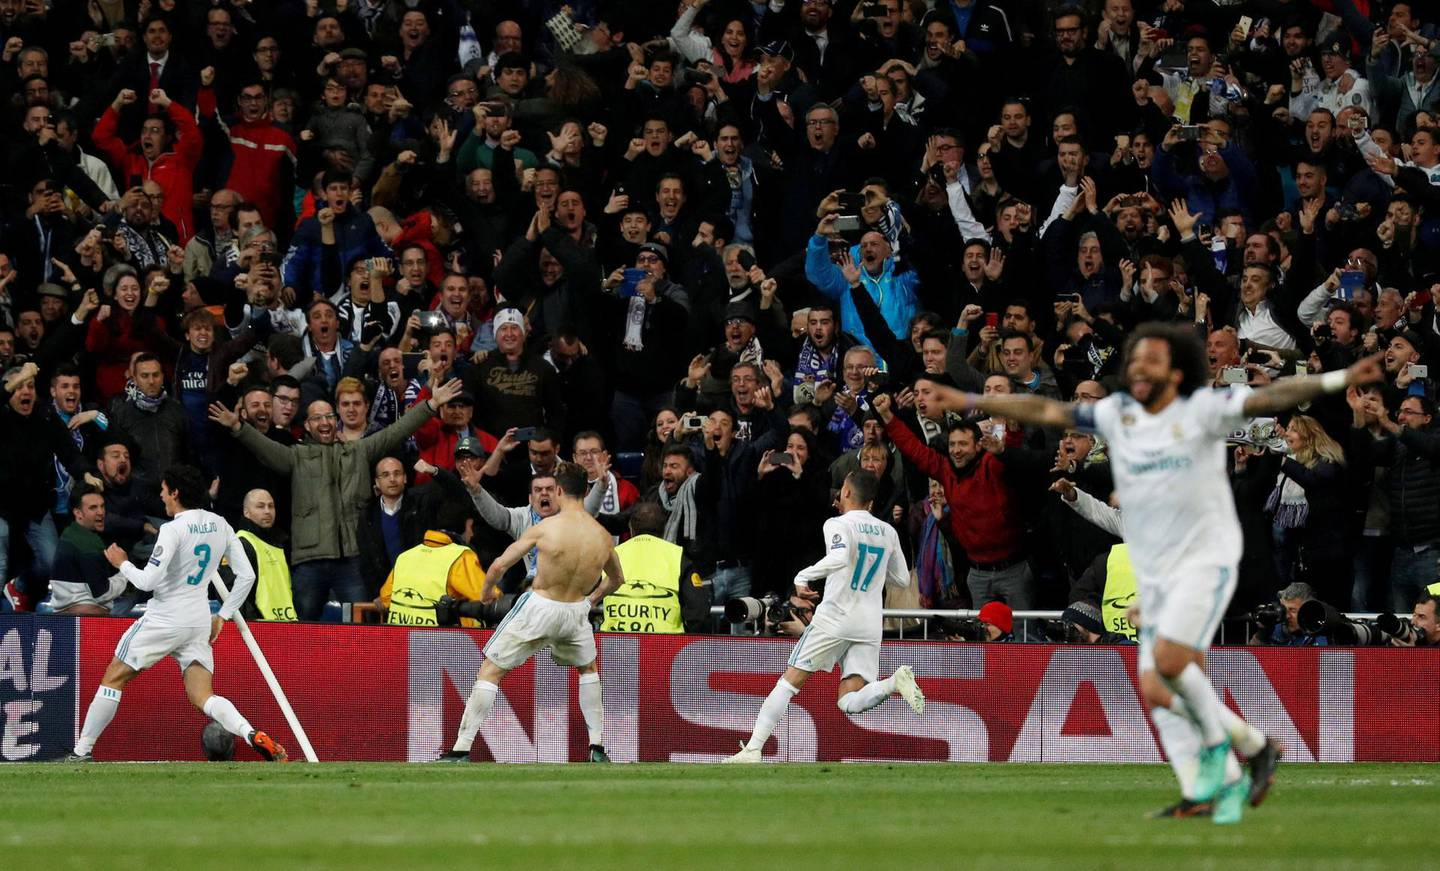 Soccer Football - Champions League Quarter Final Second Leg - Real Madrid vs Juventus - Santiago Bernabeu, Madrid, Spain - April 11, 2018   Real Madrid's Cristiano Ronaldo celebrates scoring their first goal with team mates               REUTERS/Paul Hanna     TPX IMAGES OF THE DAY